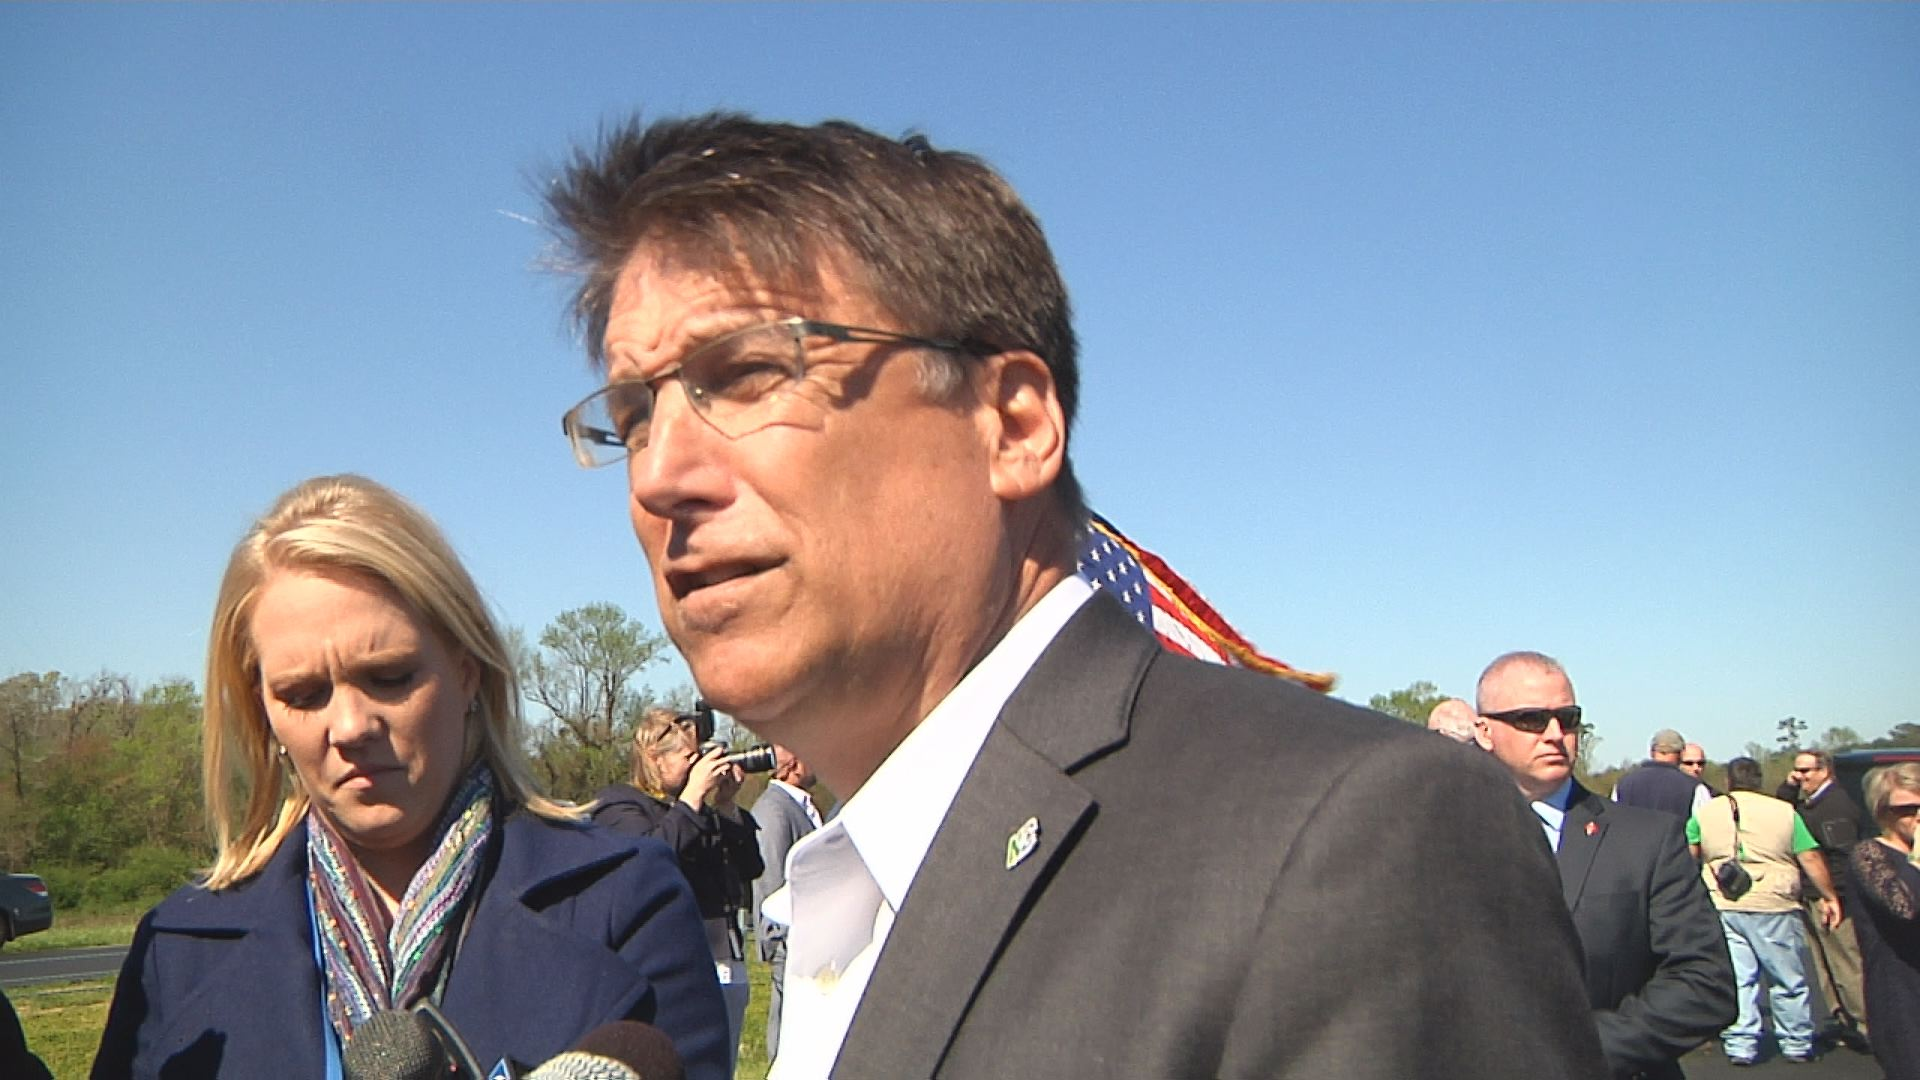 mccrory responds to hb2_192499